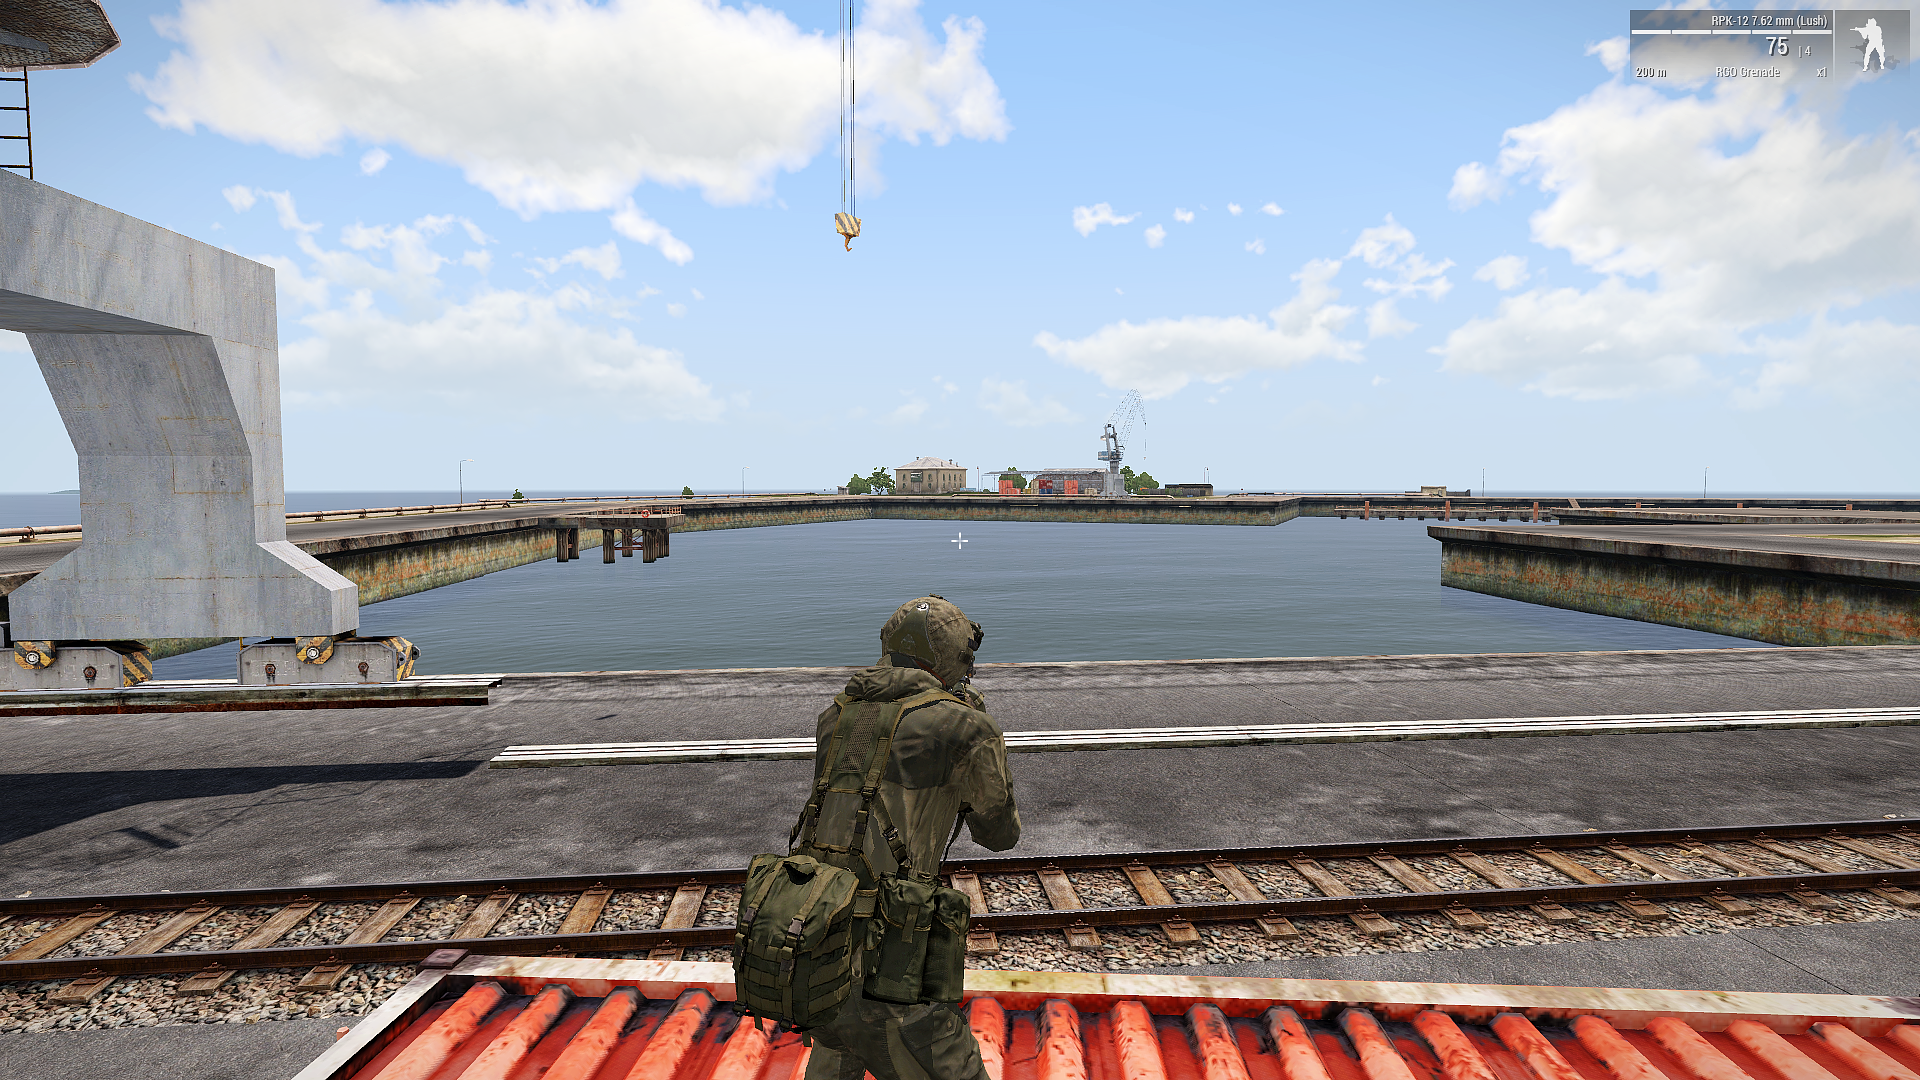 Arma3-x64-2020-01-28-15-56-55.png